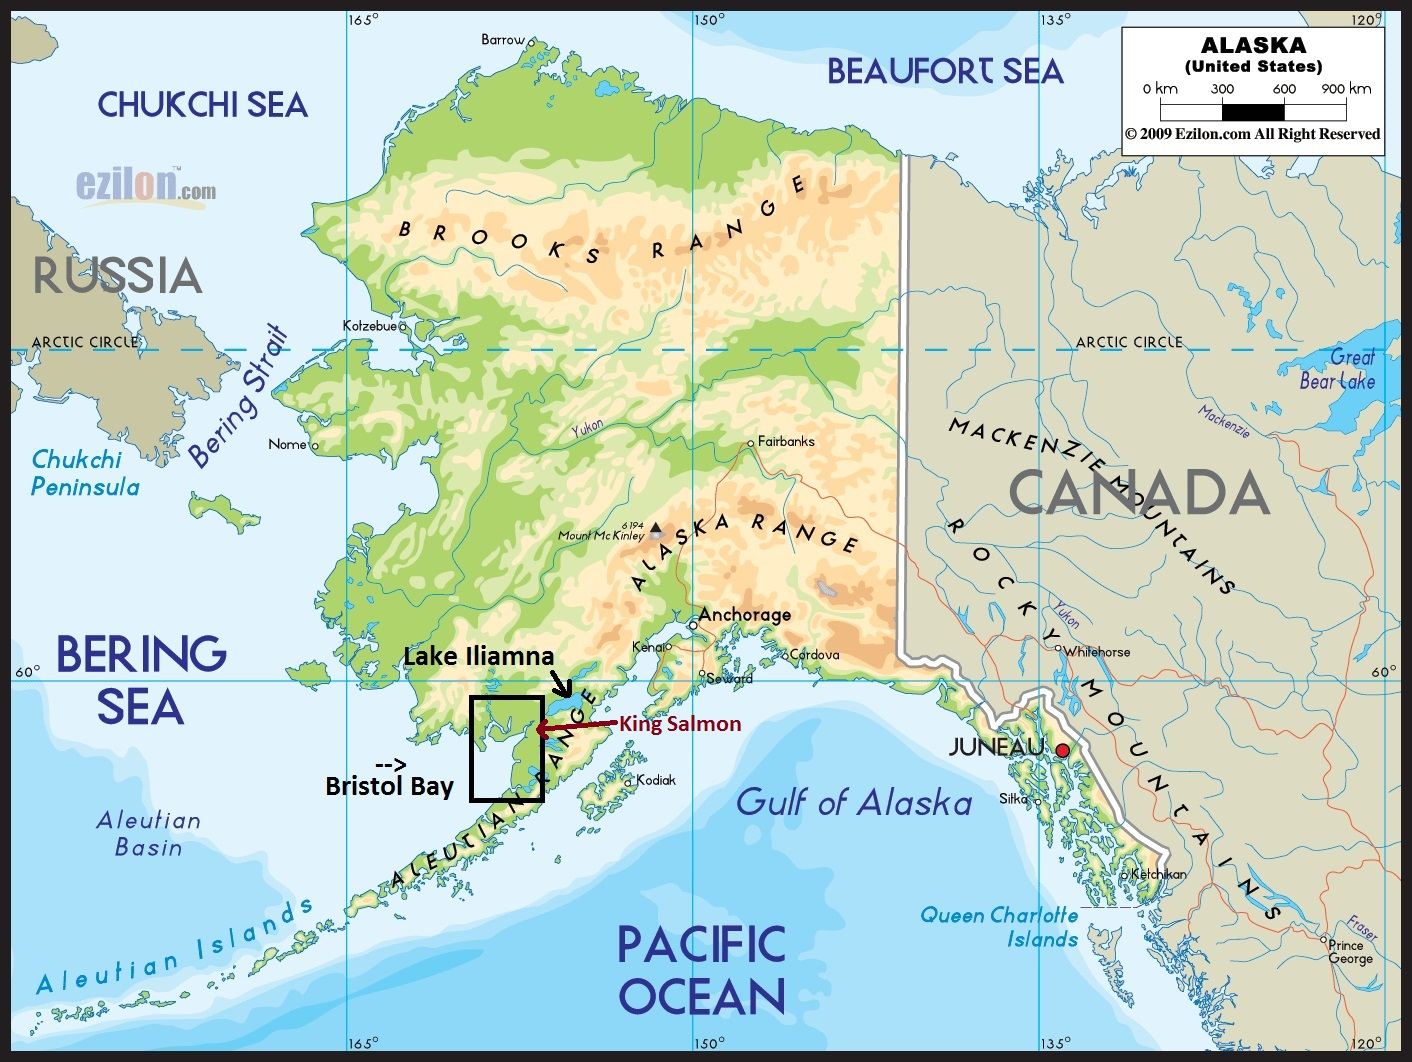 Map of King Salmon, Alaska known for epic salmon fishing #kingsalmon #fishingalaska #alaska